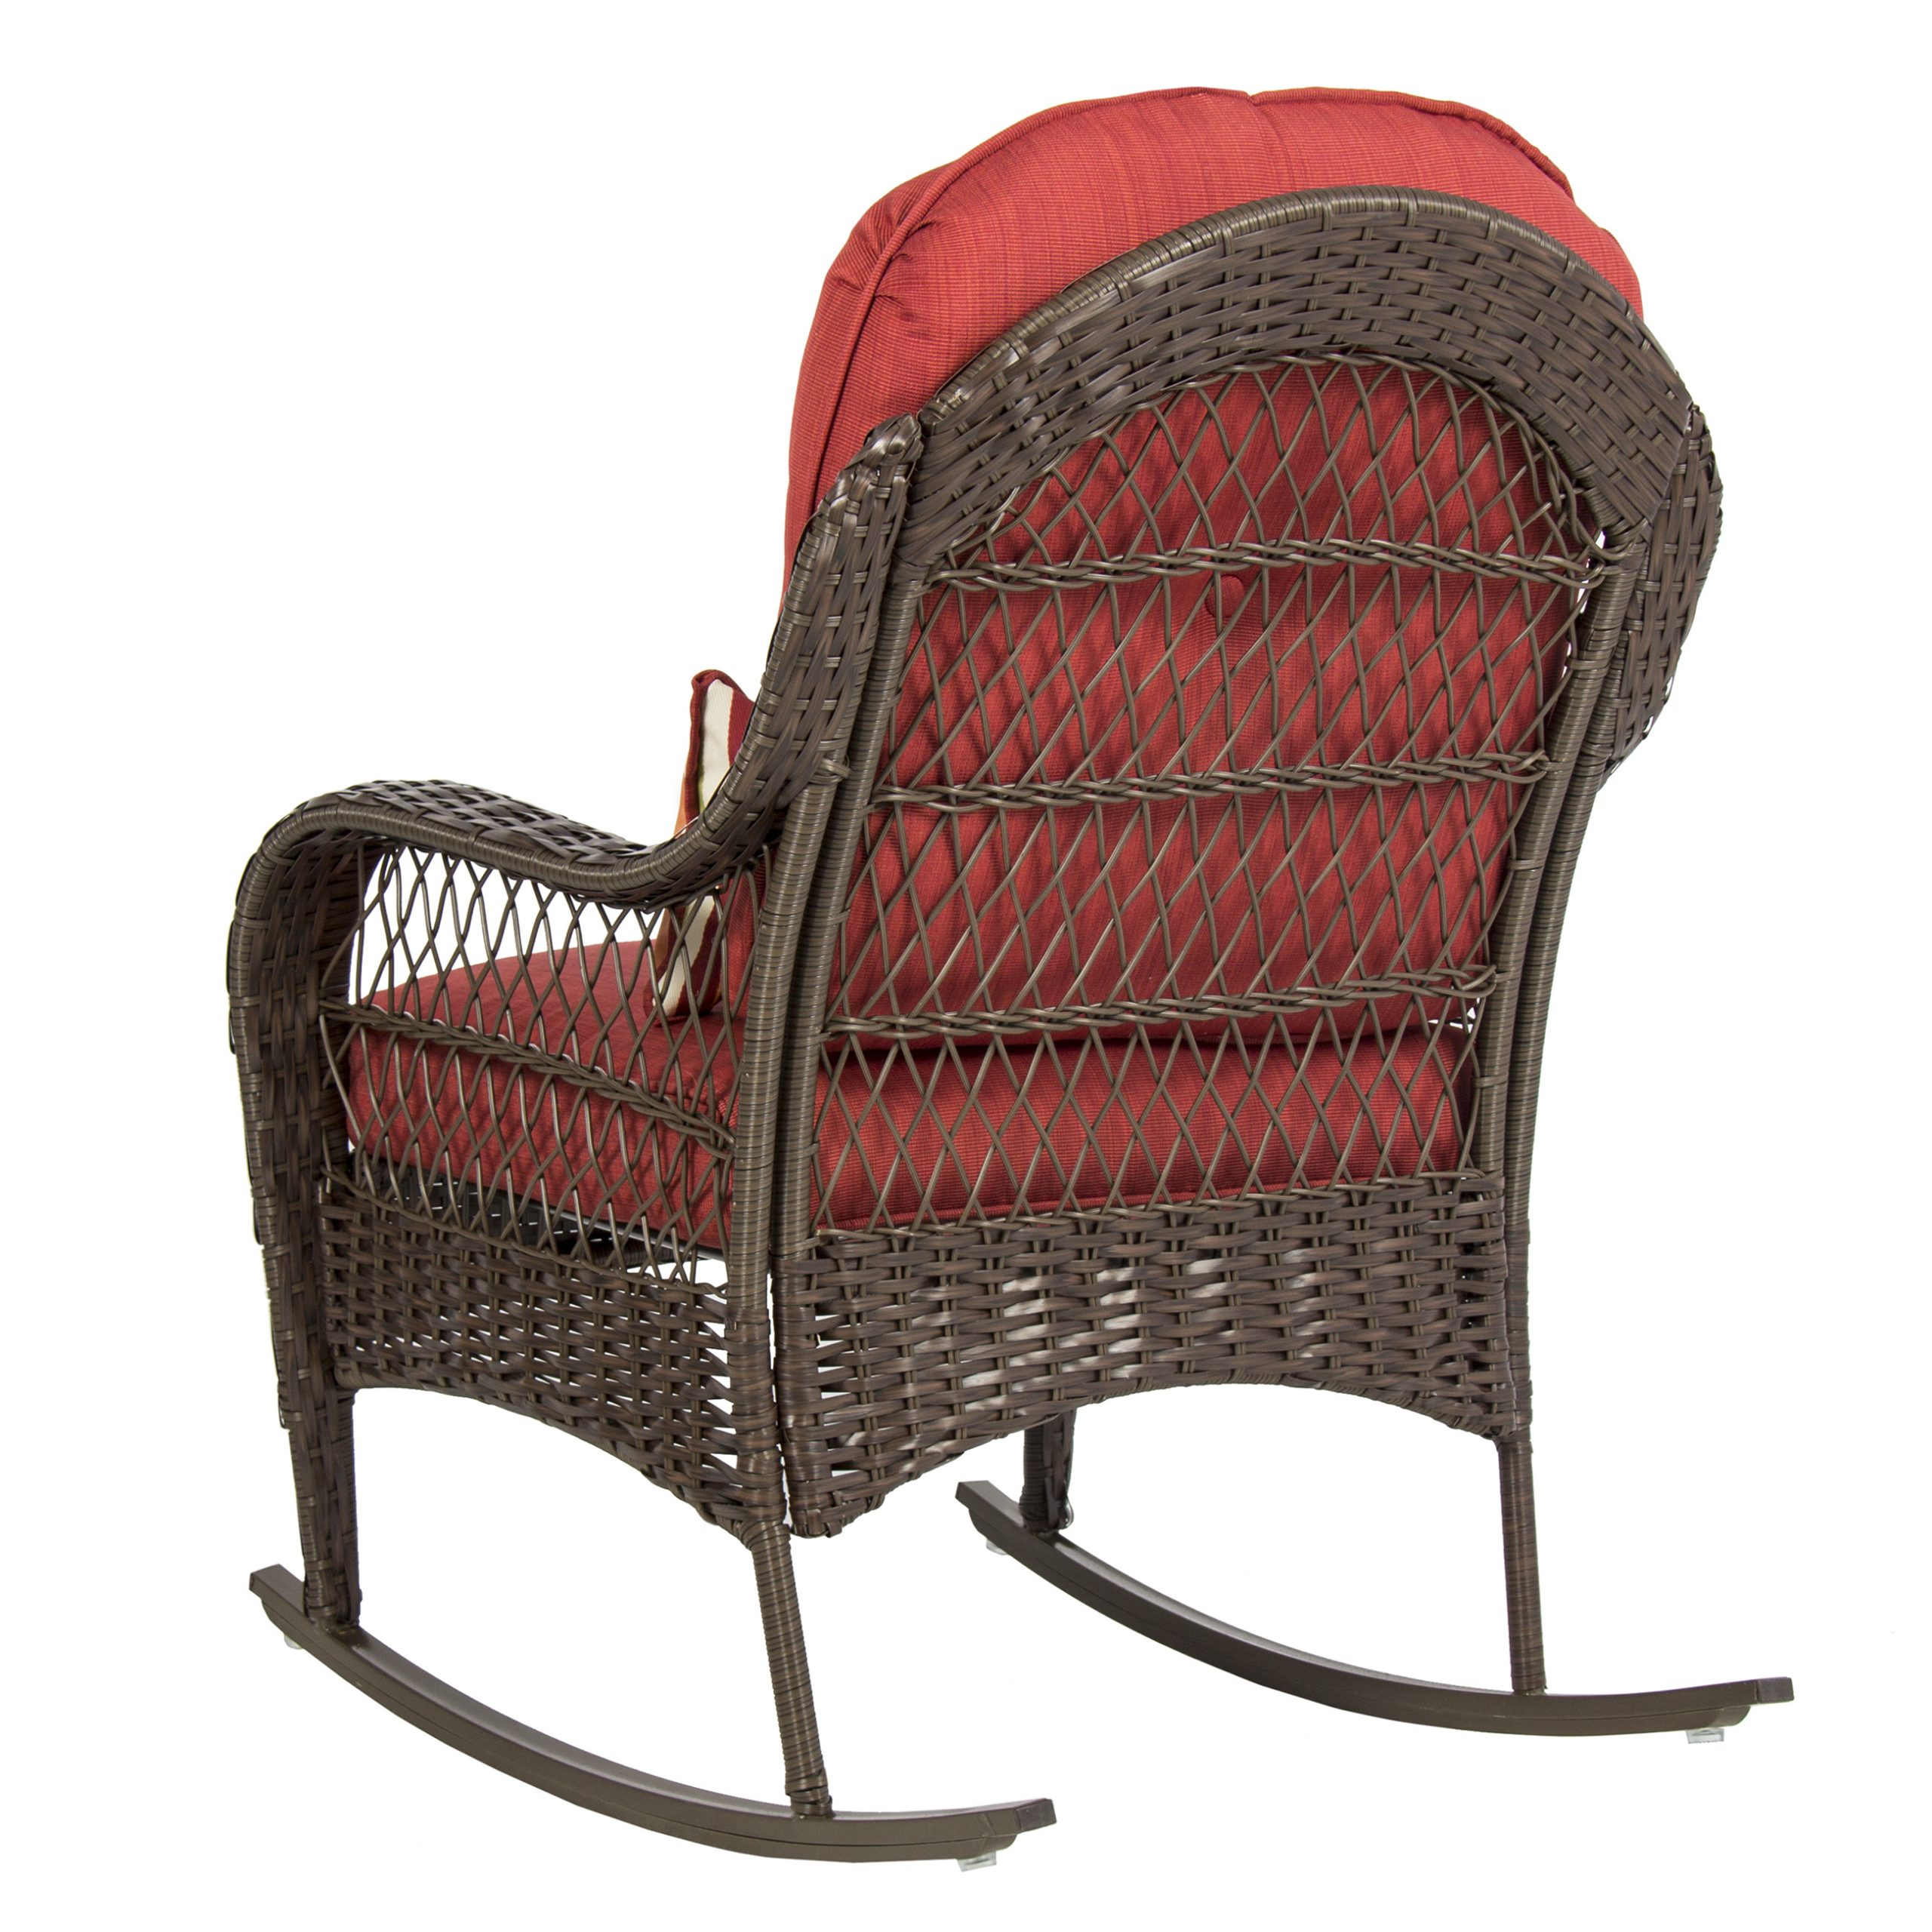 Best Choice Products Outdoor Wicker Patio Rocking Chair W Pertaining To Famous Rocking Benches With Cushions (View 3 of 30)